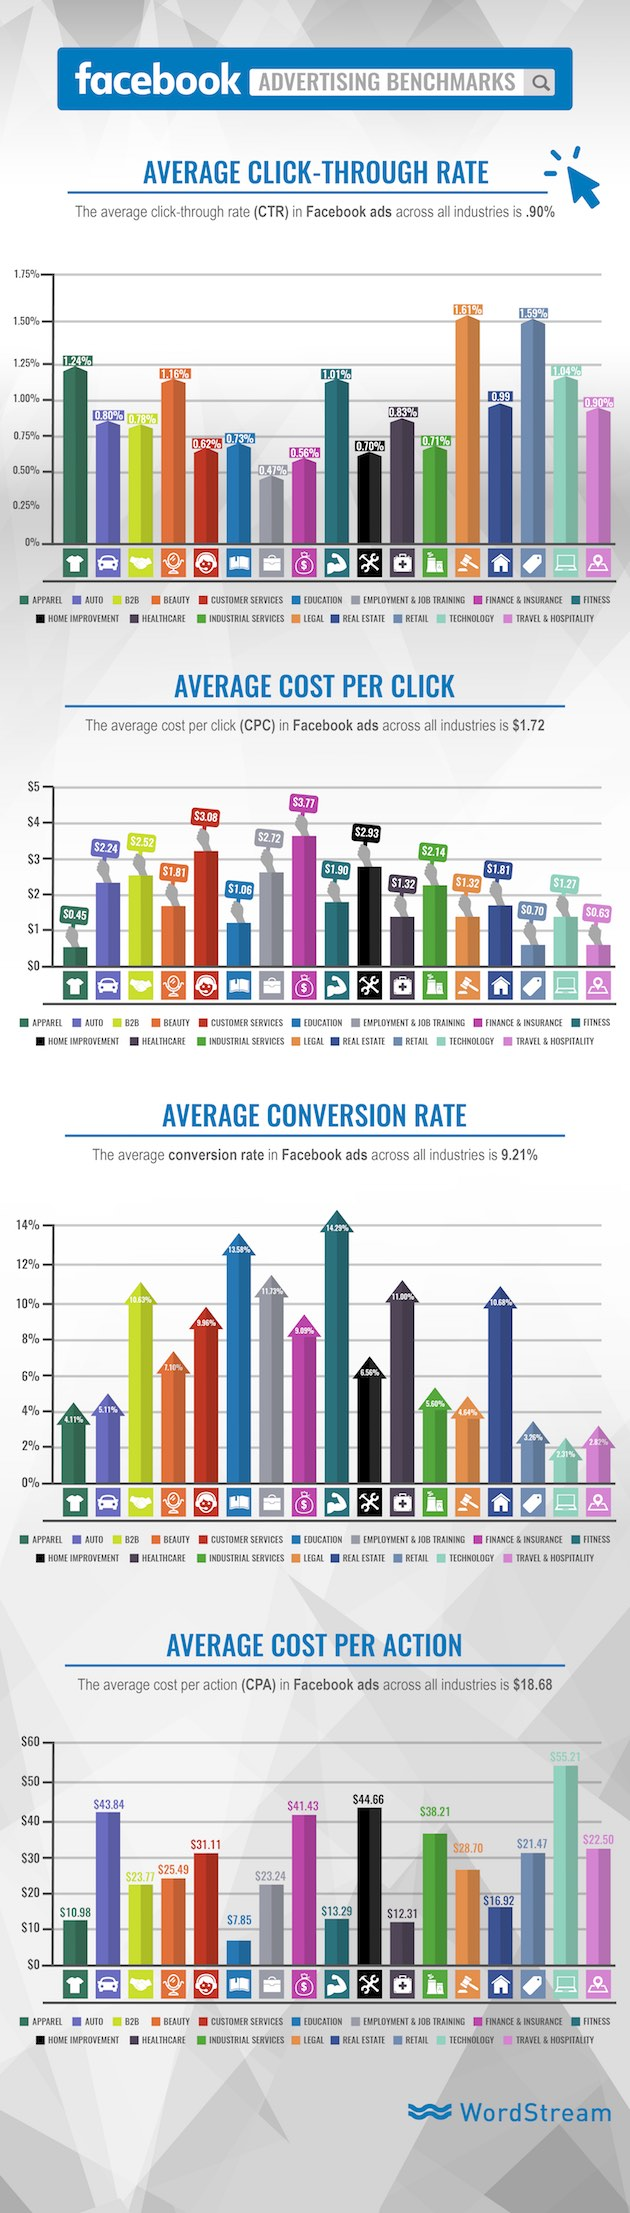 Facebook Advertising Benchmarks for 18 Industries